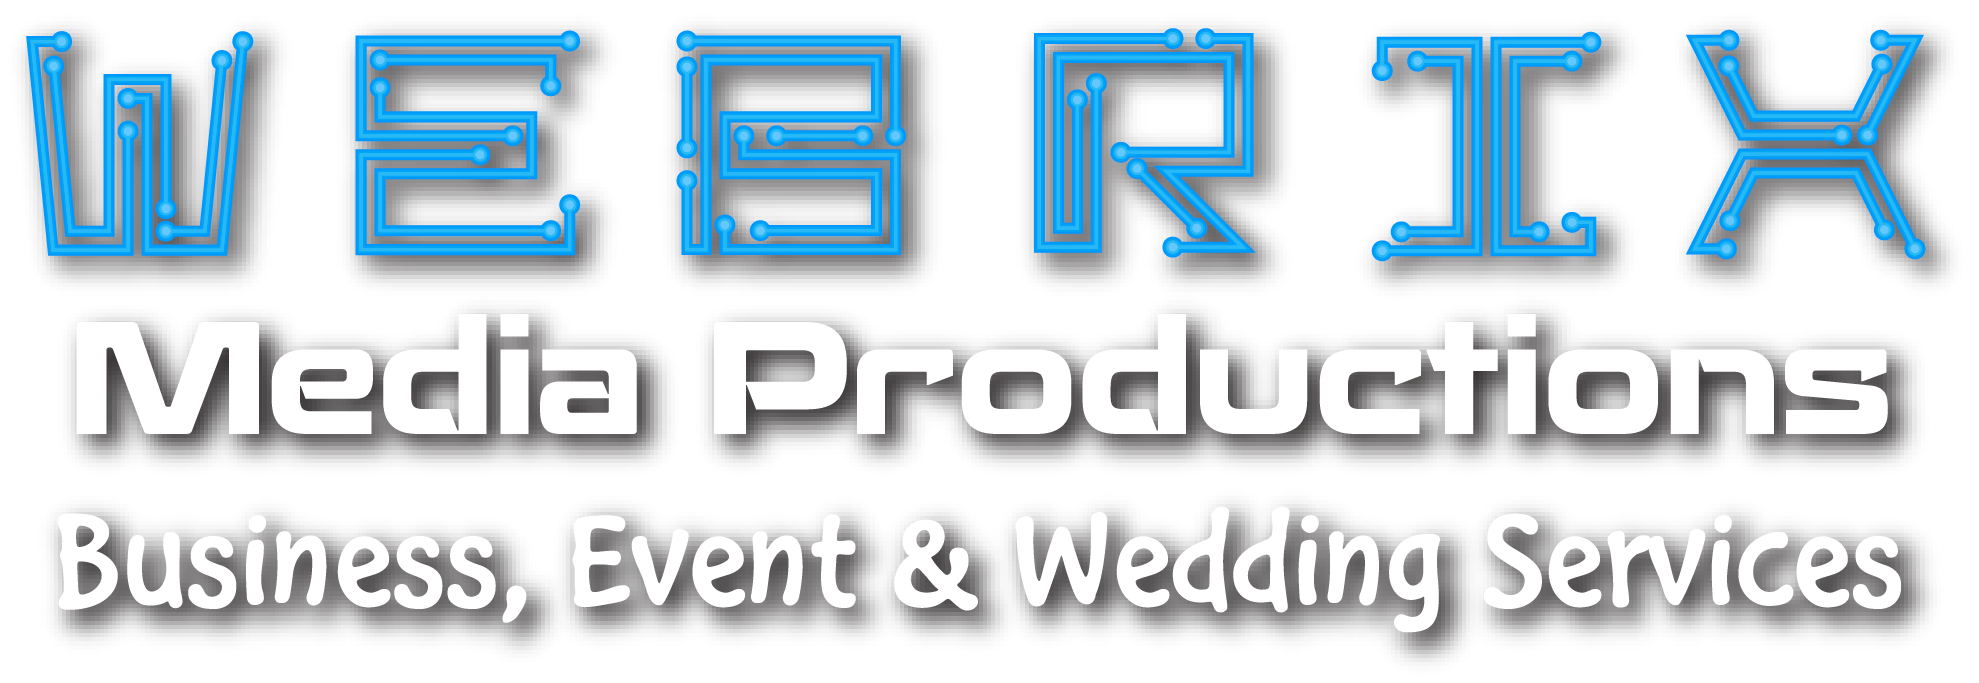 Webrix Media Productions | Providing Mobile DJ, Photography, Photo Booth & Lighting to Weddings & Events in the Inland Northwest!